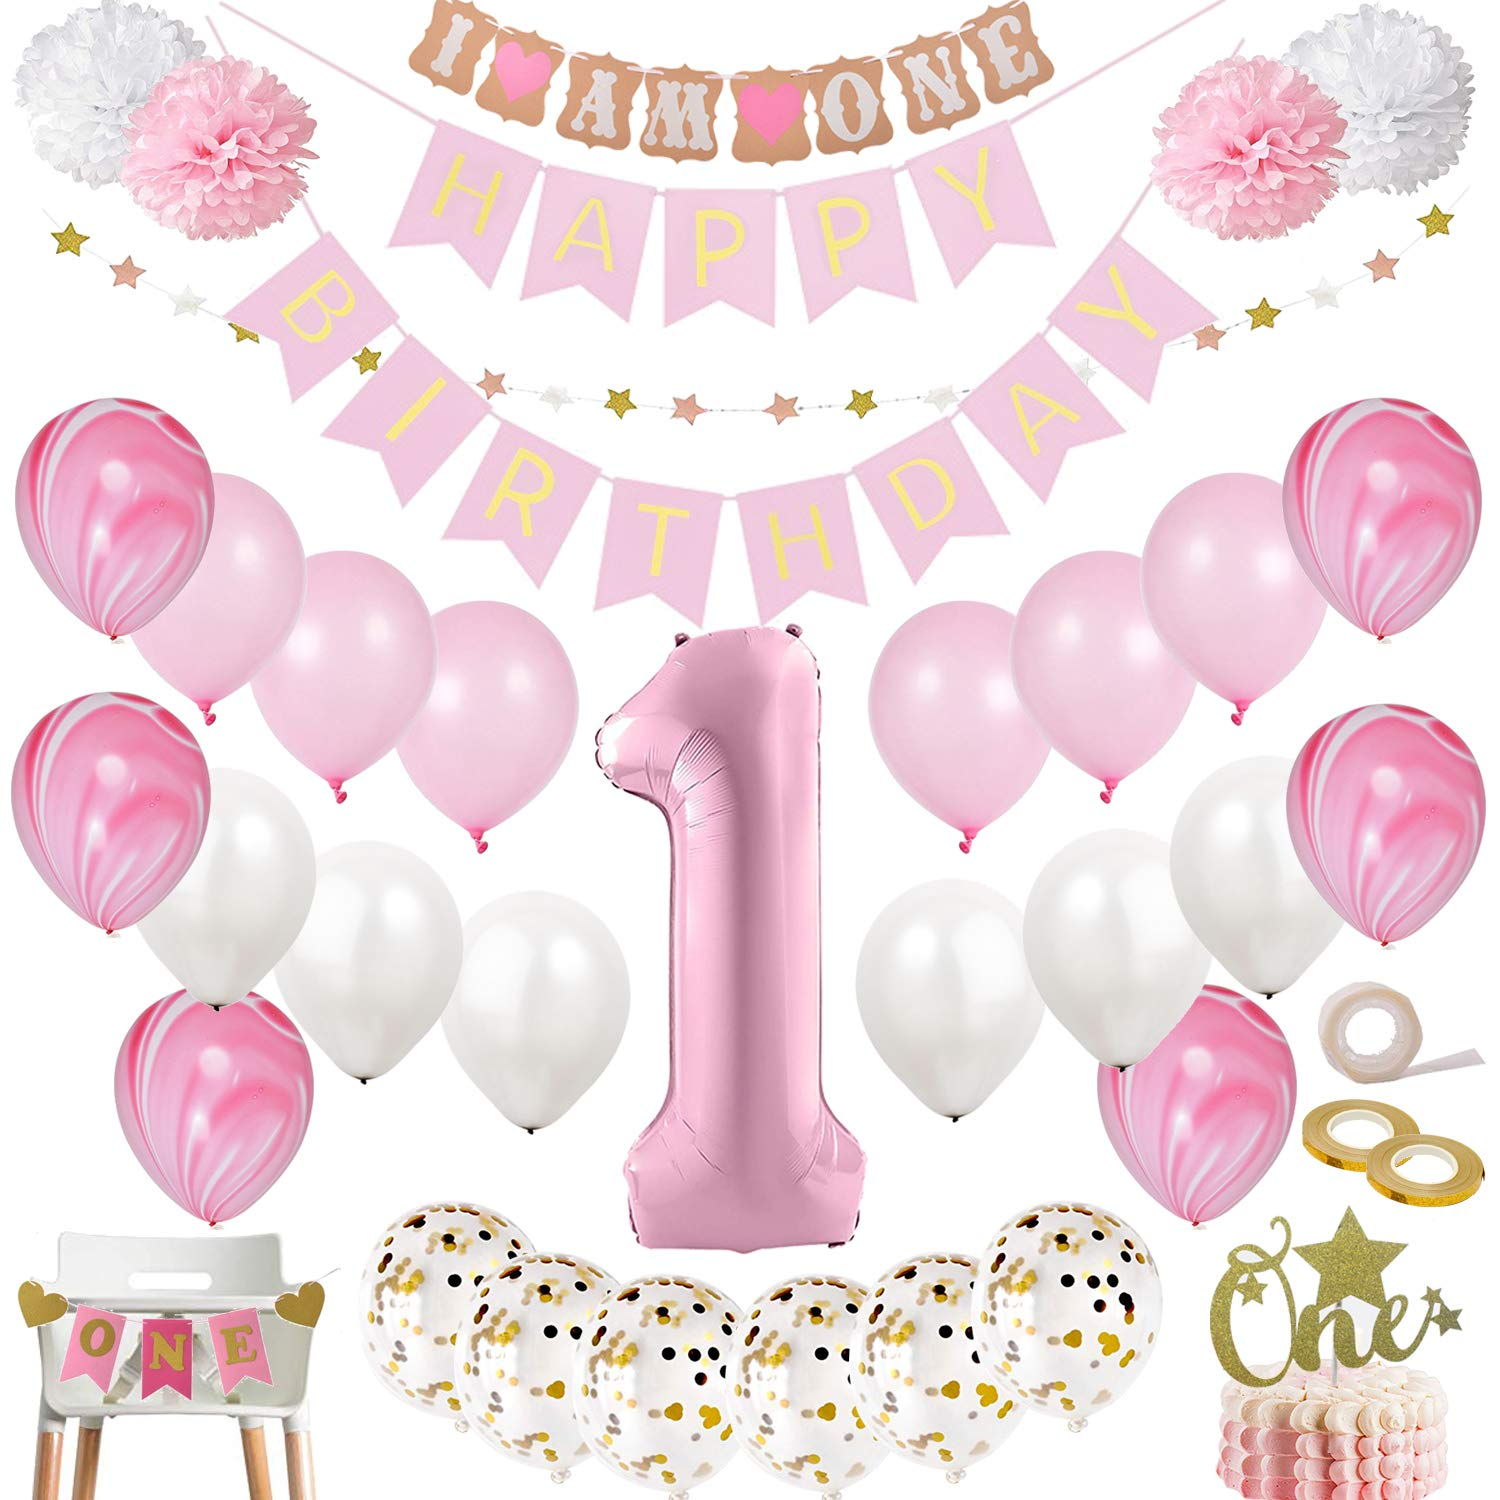 1st Birthday Party Ideas.Mayen 1st Birthday Party Decorations For Girl Mega Set Pink And Gold Girls Theme Kit First Bday 1 Year Balloons One Cake Topper Pom Poms Happy